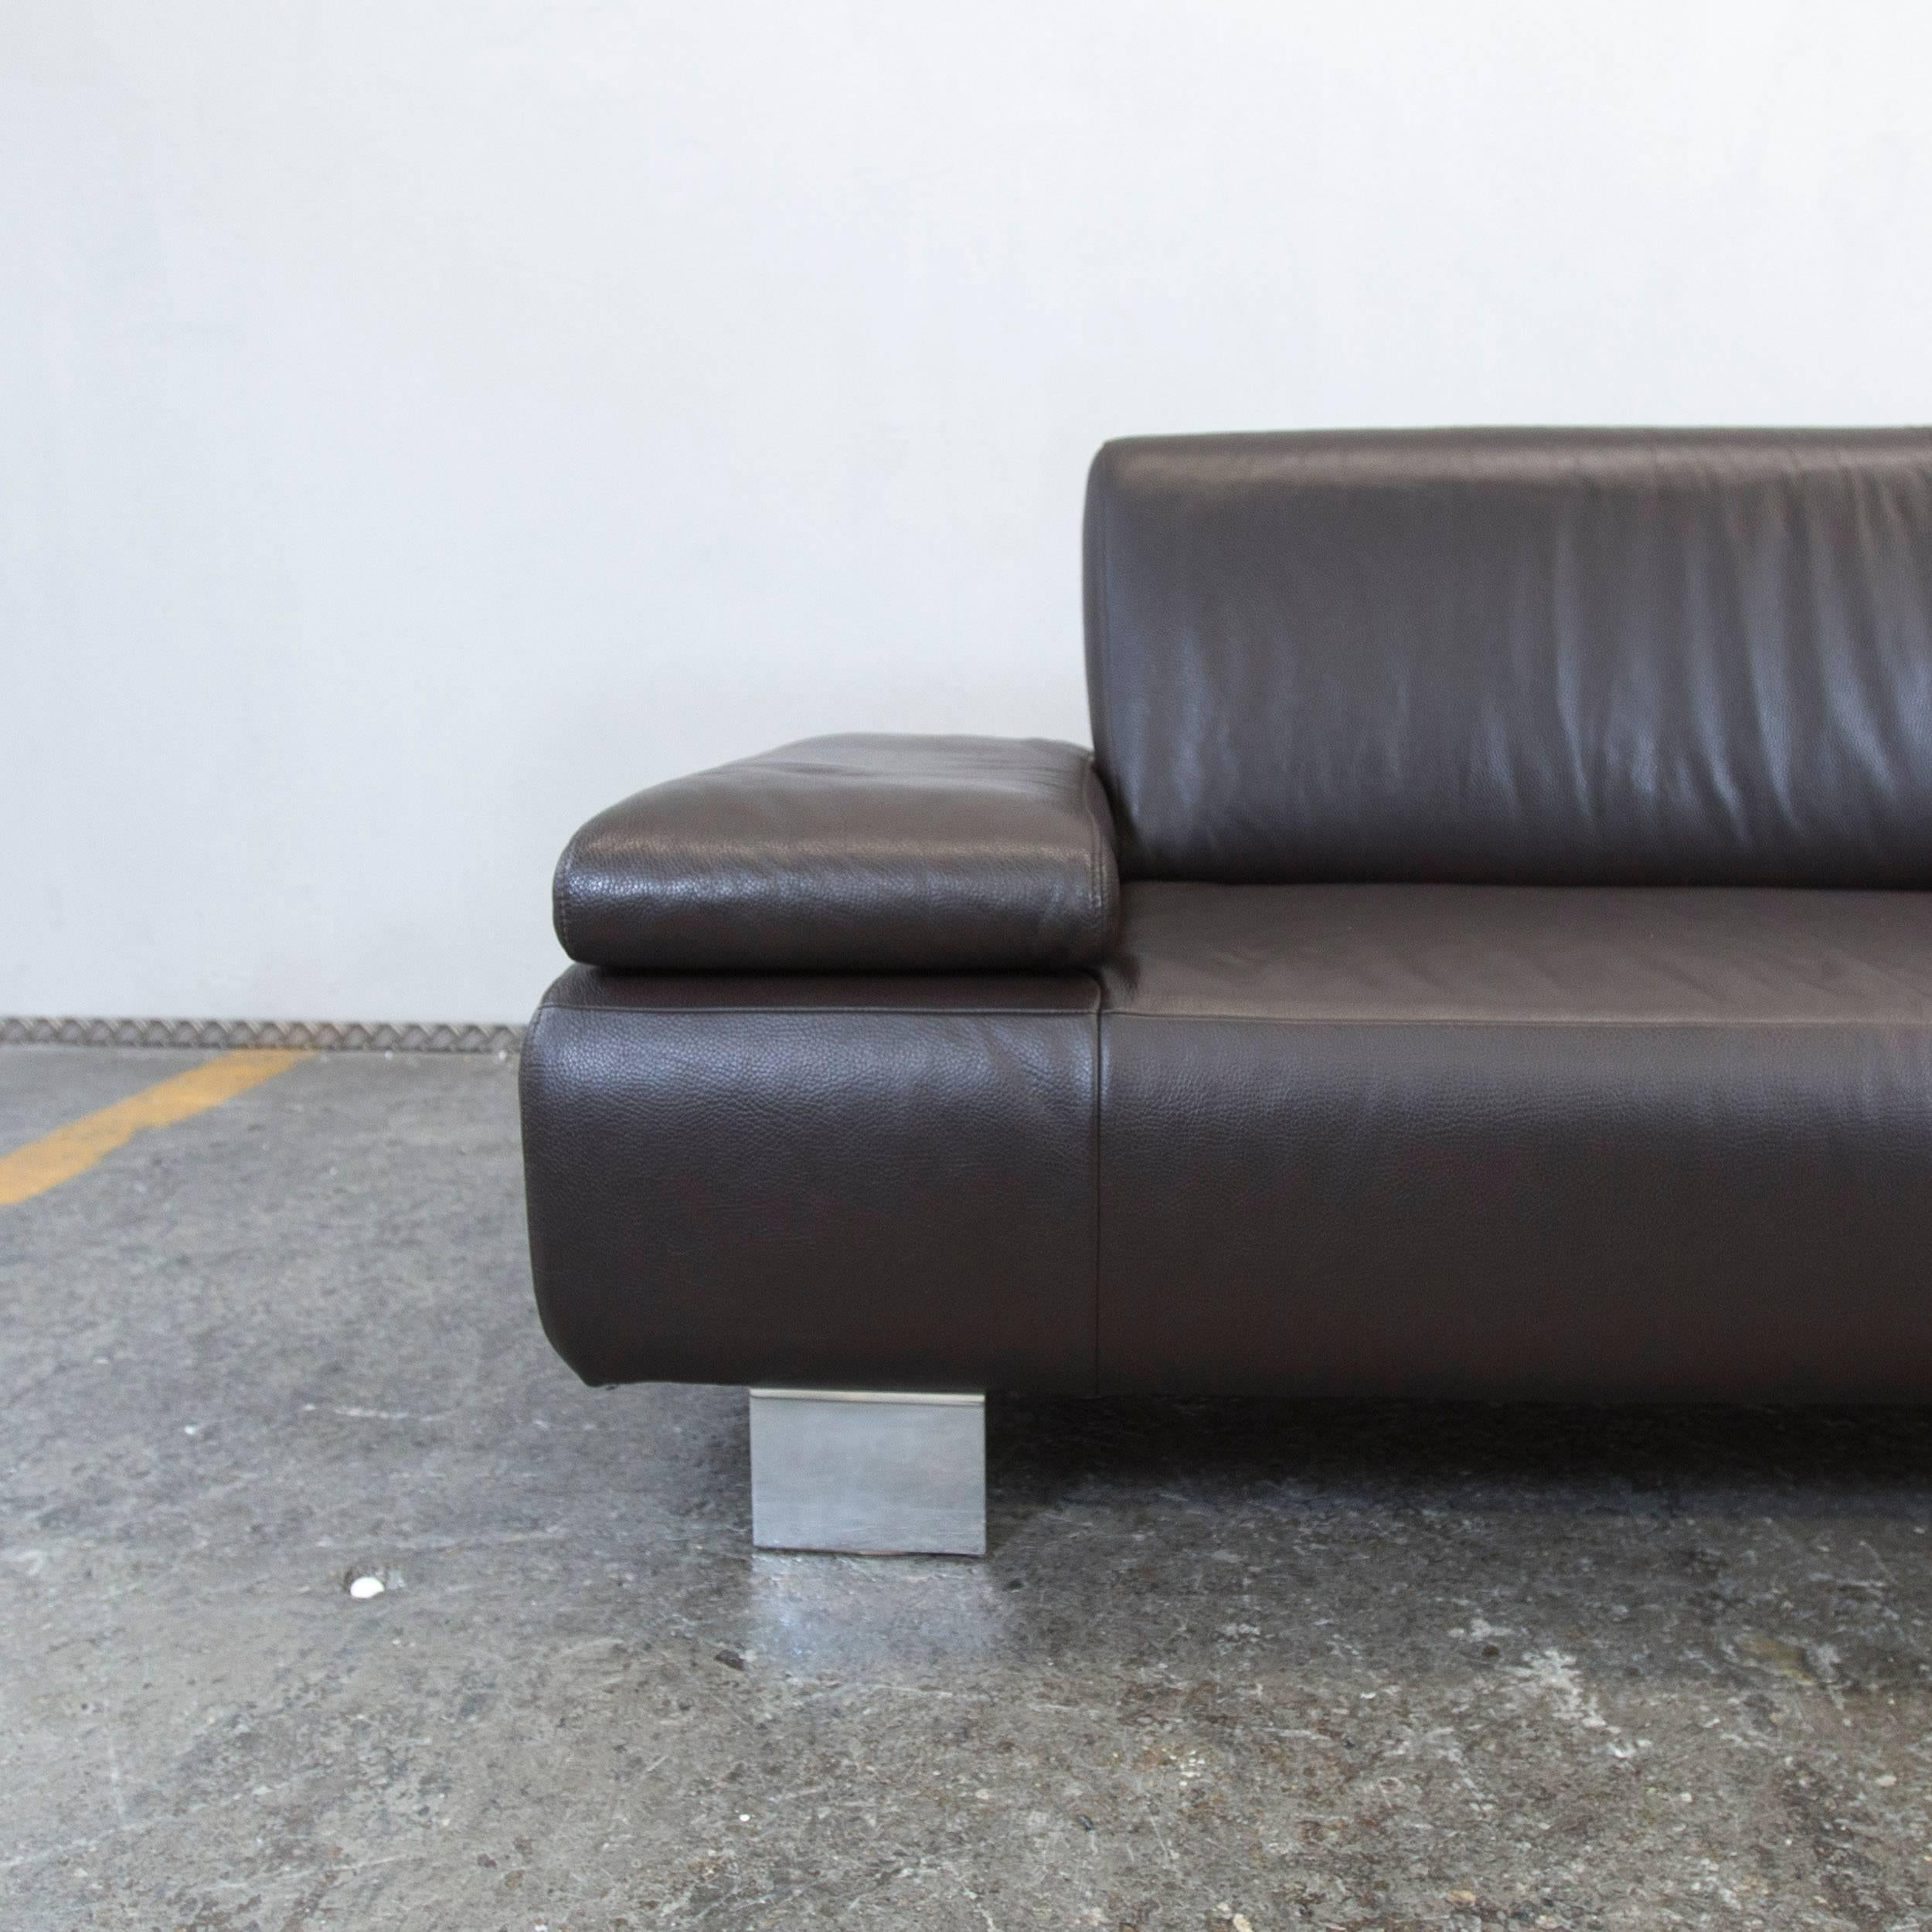 Willi Schillig Ecksofa Longlife Leder Willi Schillig Designer Sofa Brown Mocca Leather Three Seat Couch Function